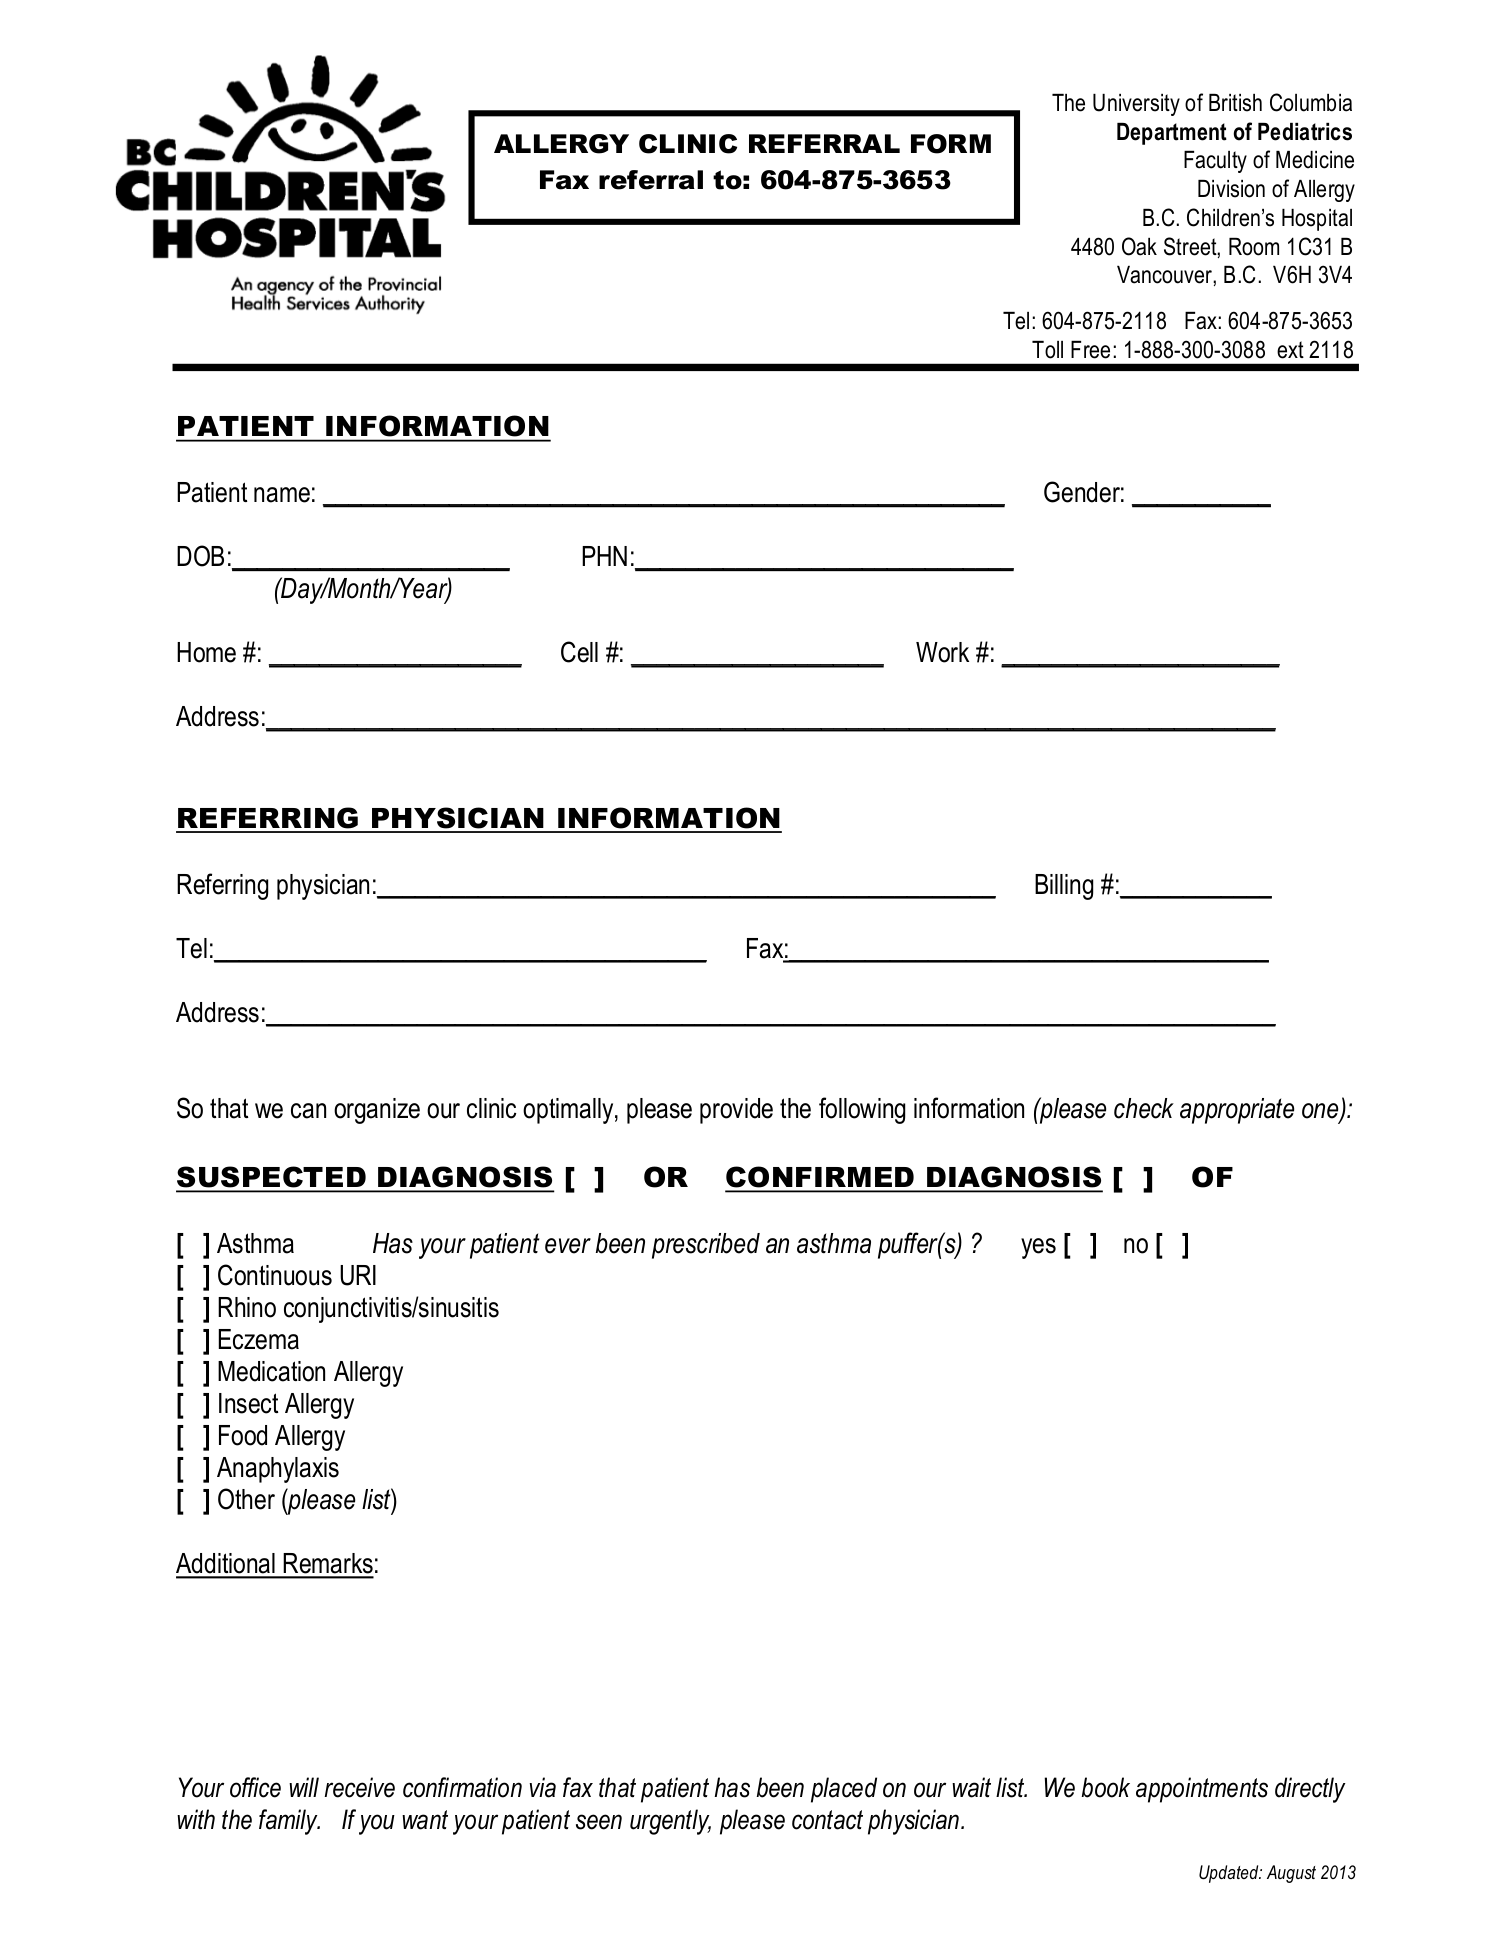 bc childrens hospital allergy clinic referral form - Referral Form